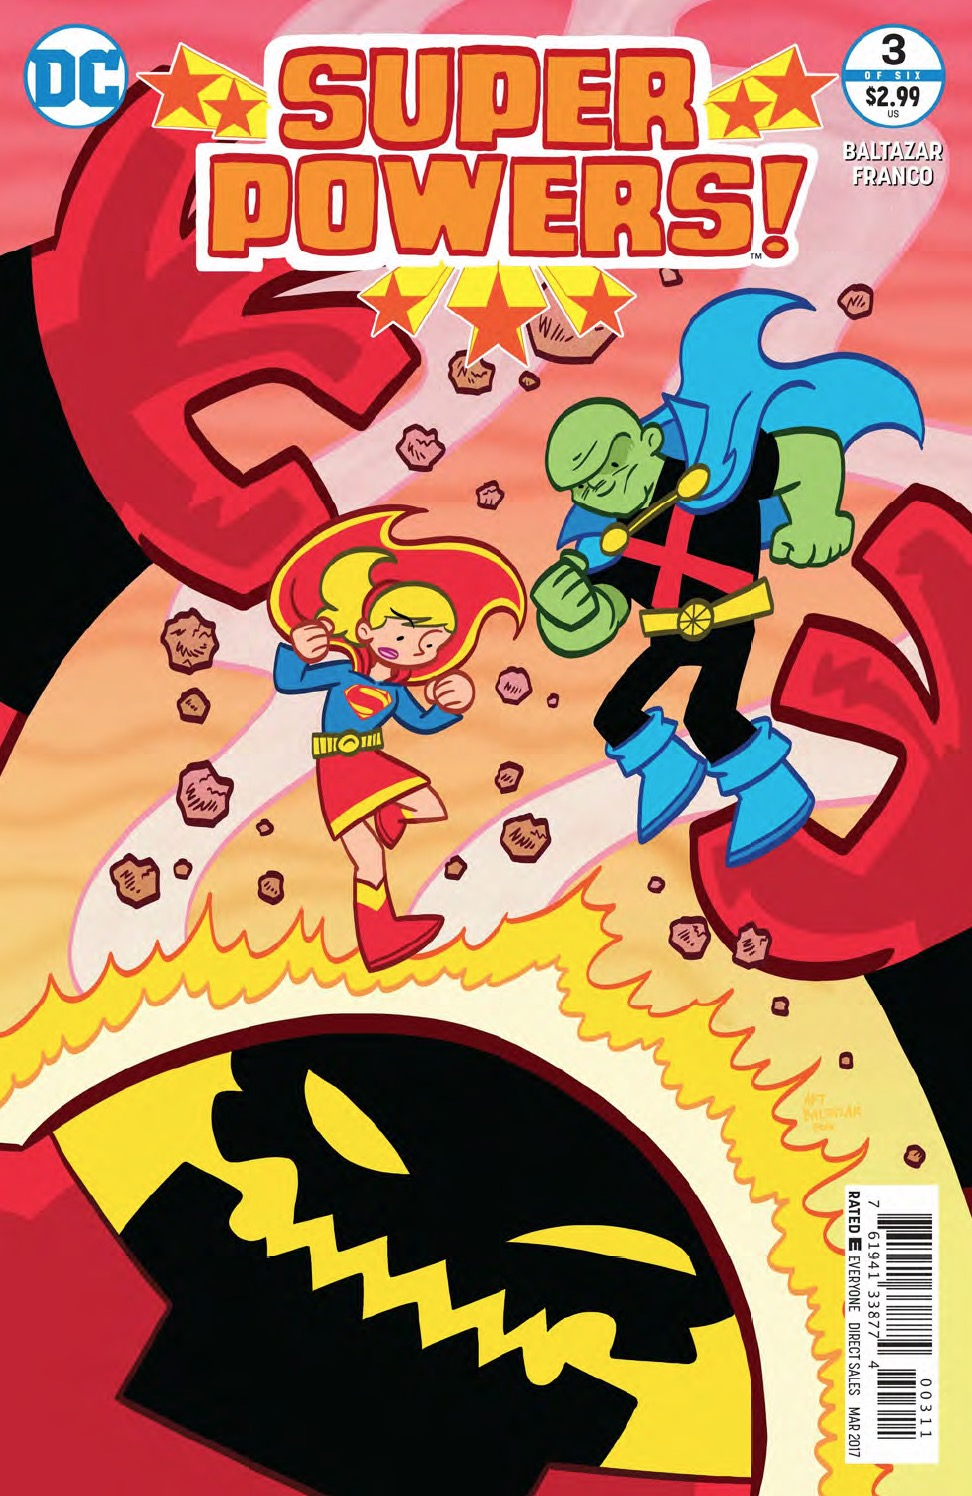 Super Powers #3 Review